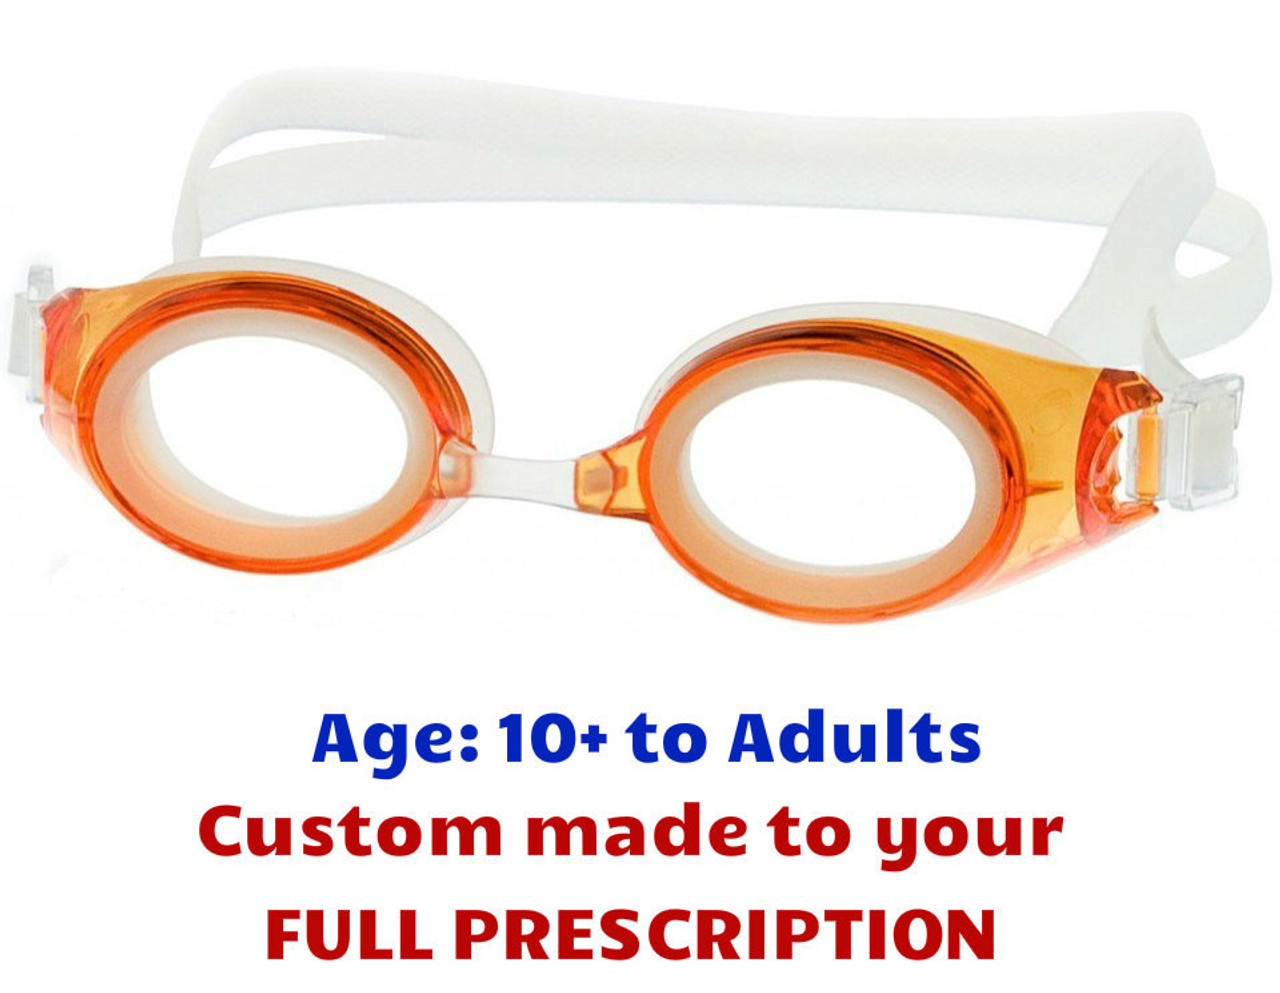 ece14f0fa8 M2P Orange Prescription Swim Goggles Suitable for Ages from 10 Years to  Adult